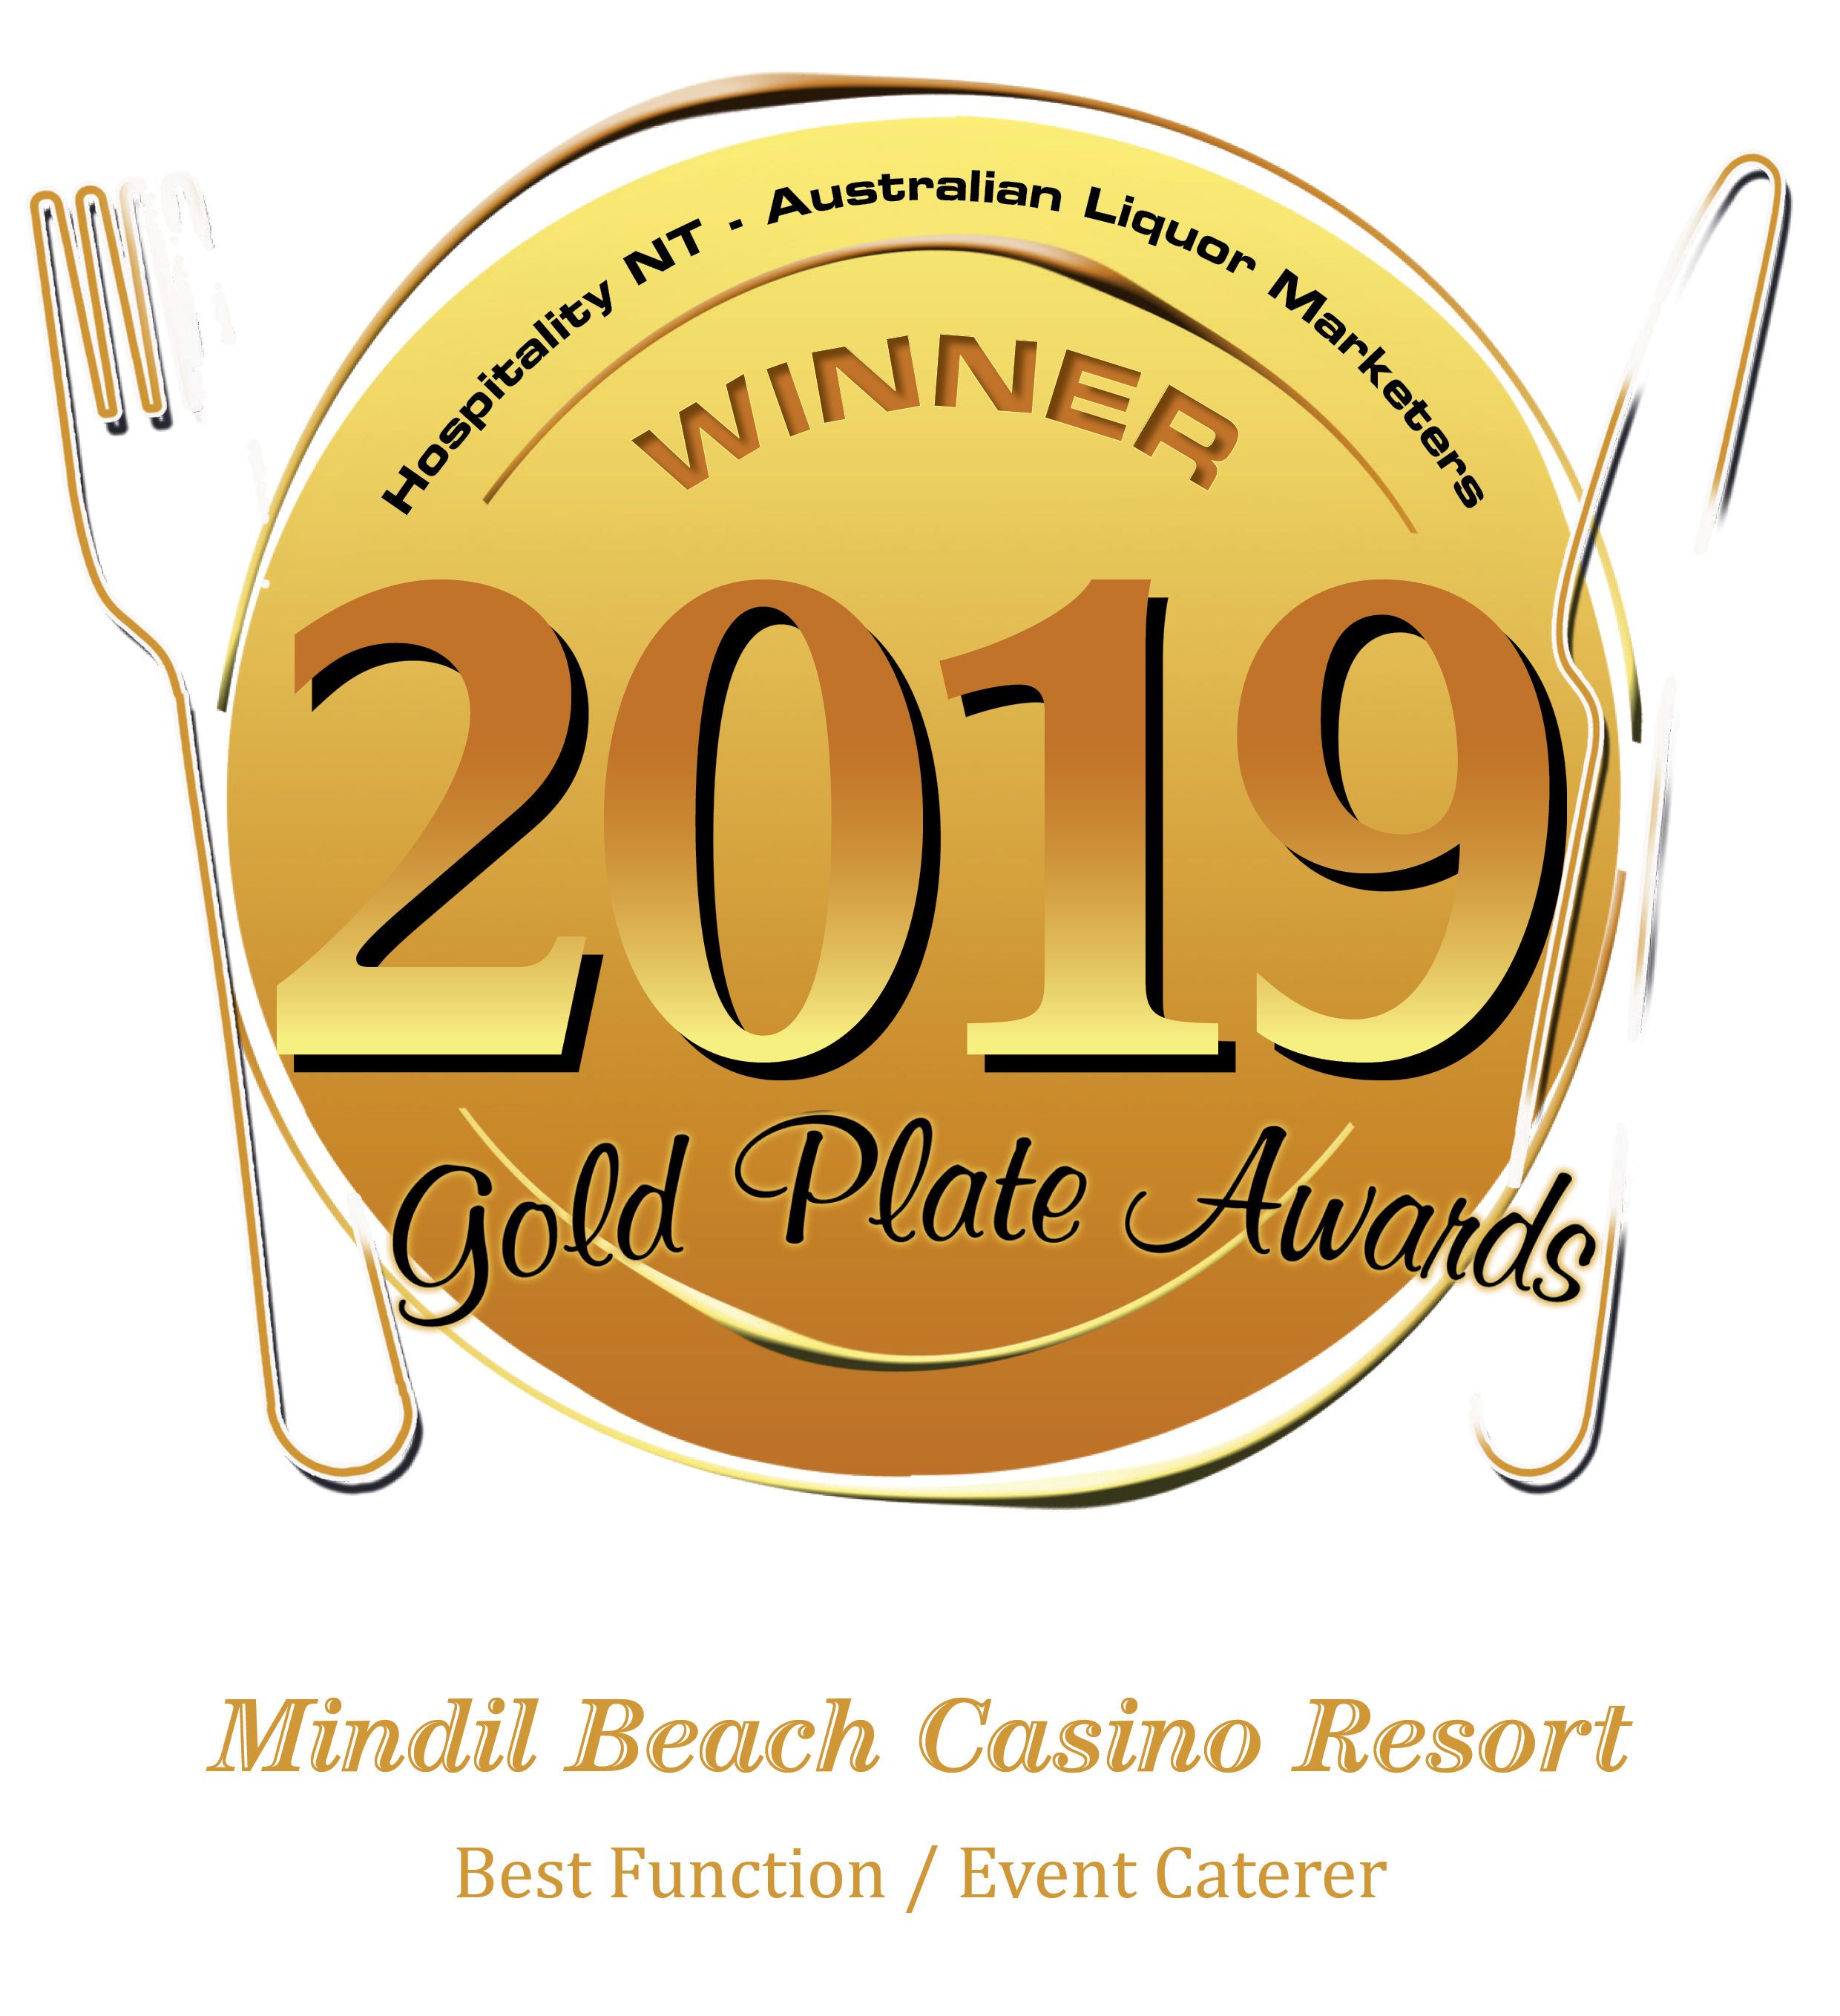 Best Functions Event Caterer Gold Plate Awards Winner 2019 | Functions | Mindil Beach Casino Resort